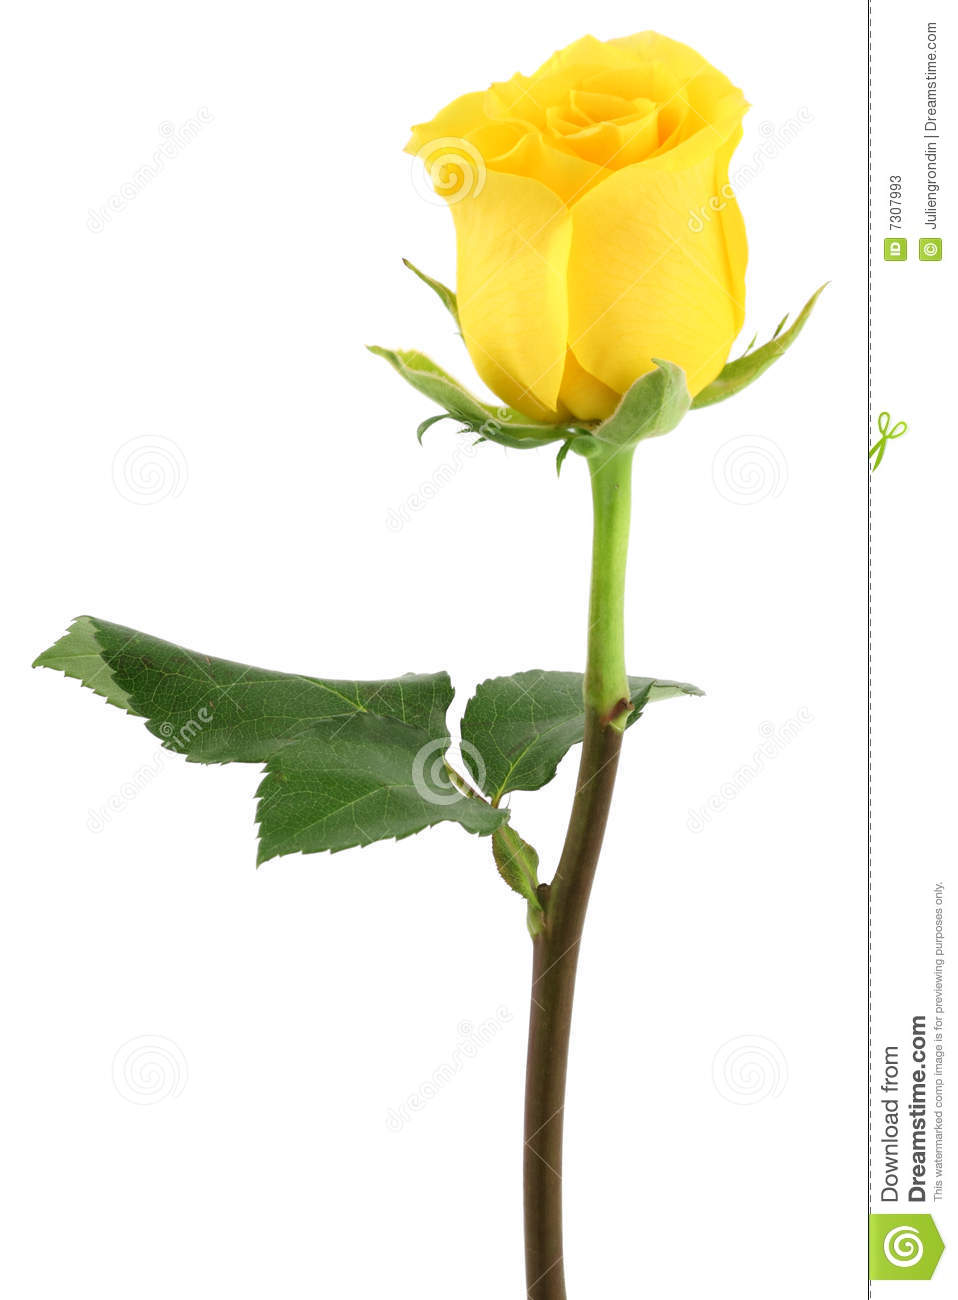 Yellow Rose clipart long stem Rose Yellow Clipart Rose Stem